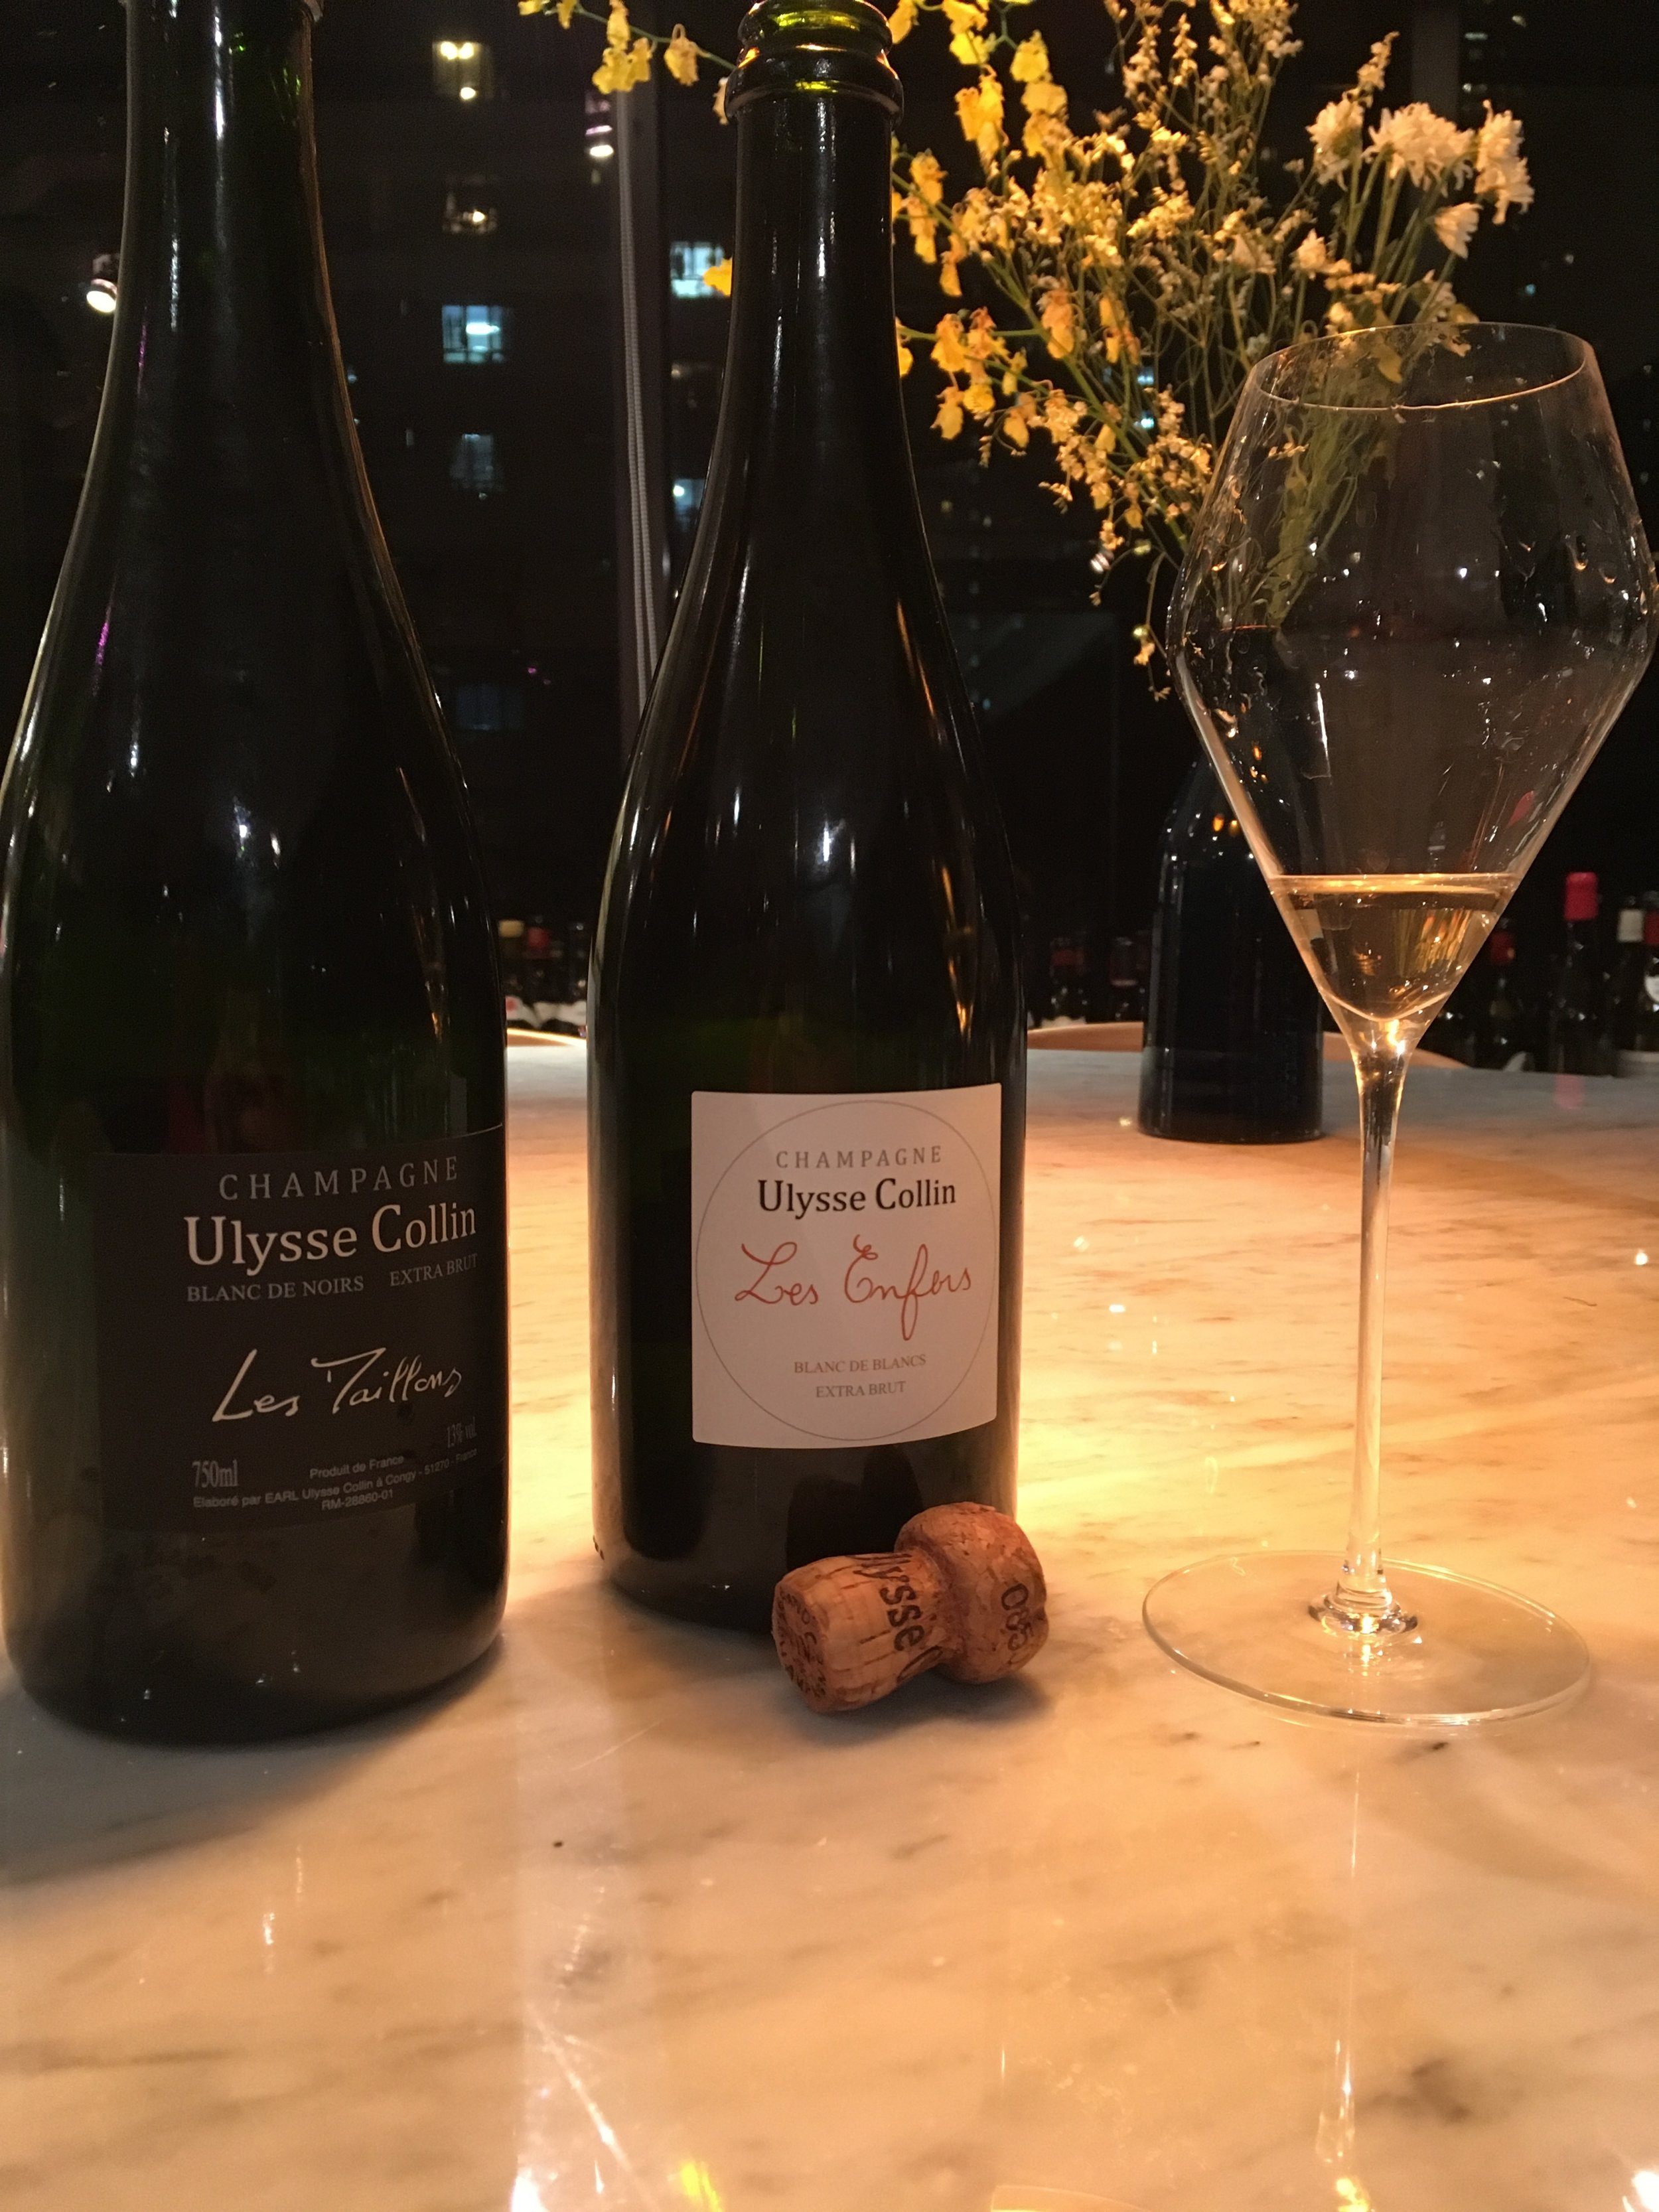 Ulysse Collin champagnes at the office